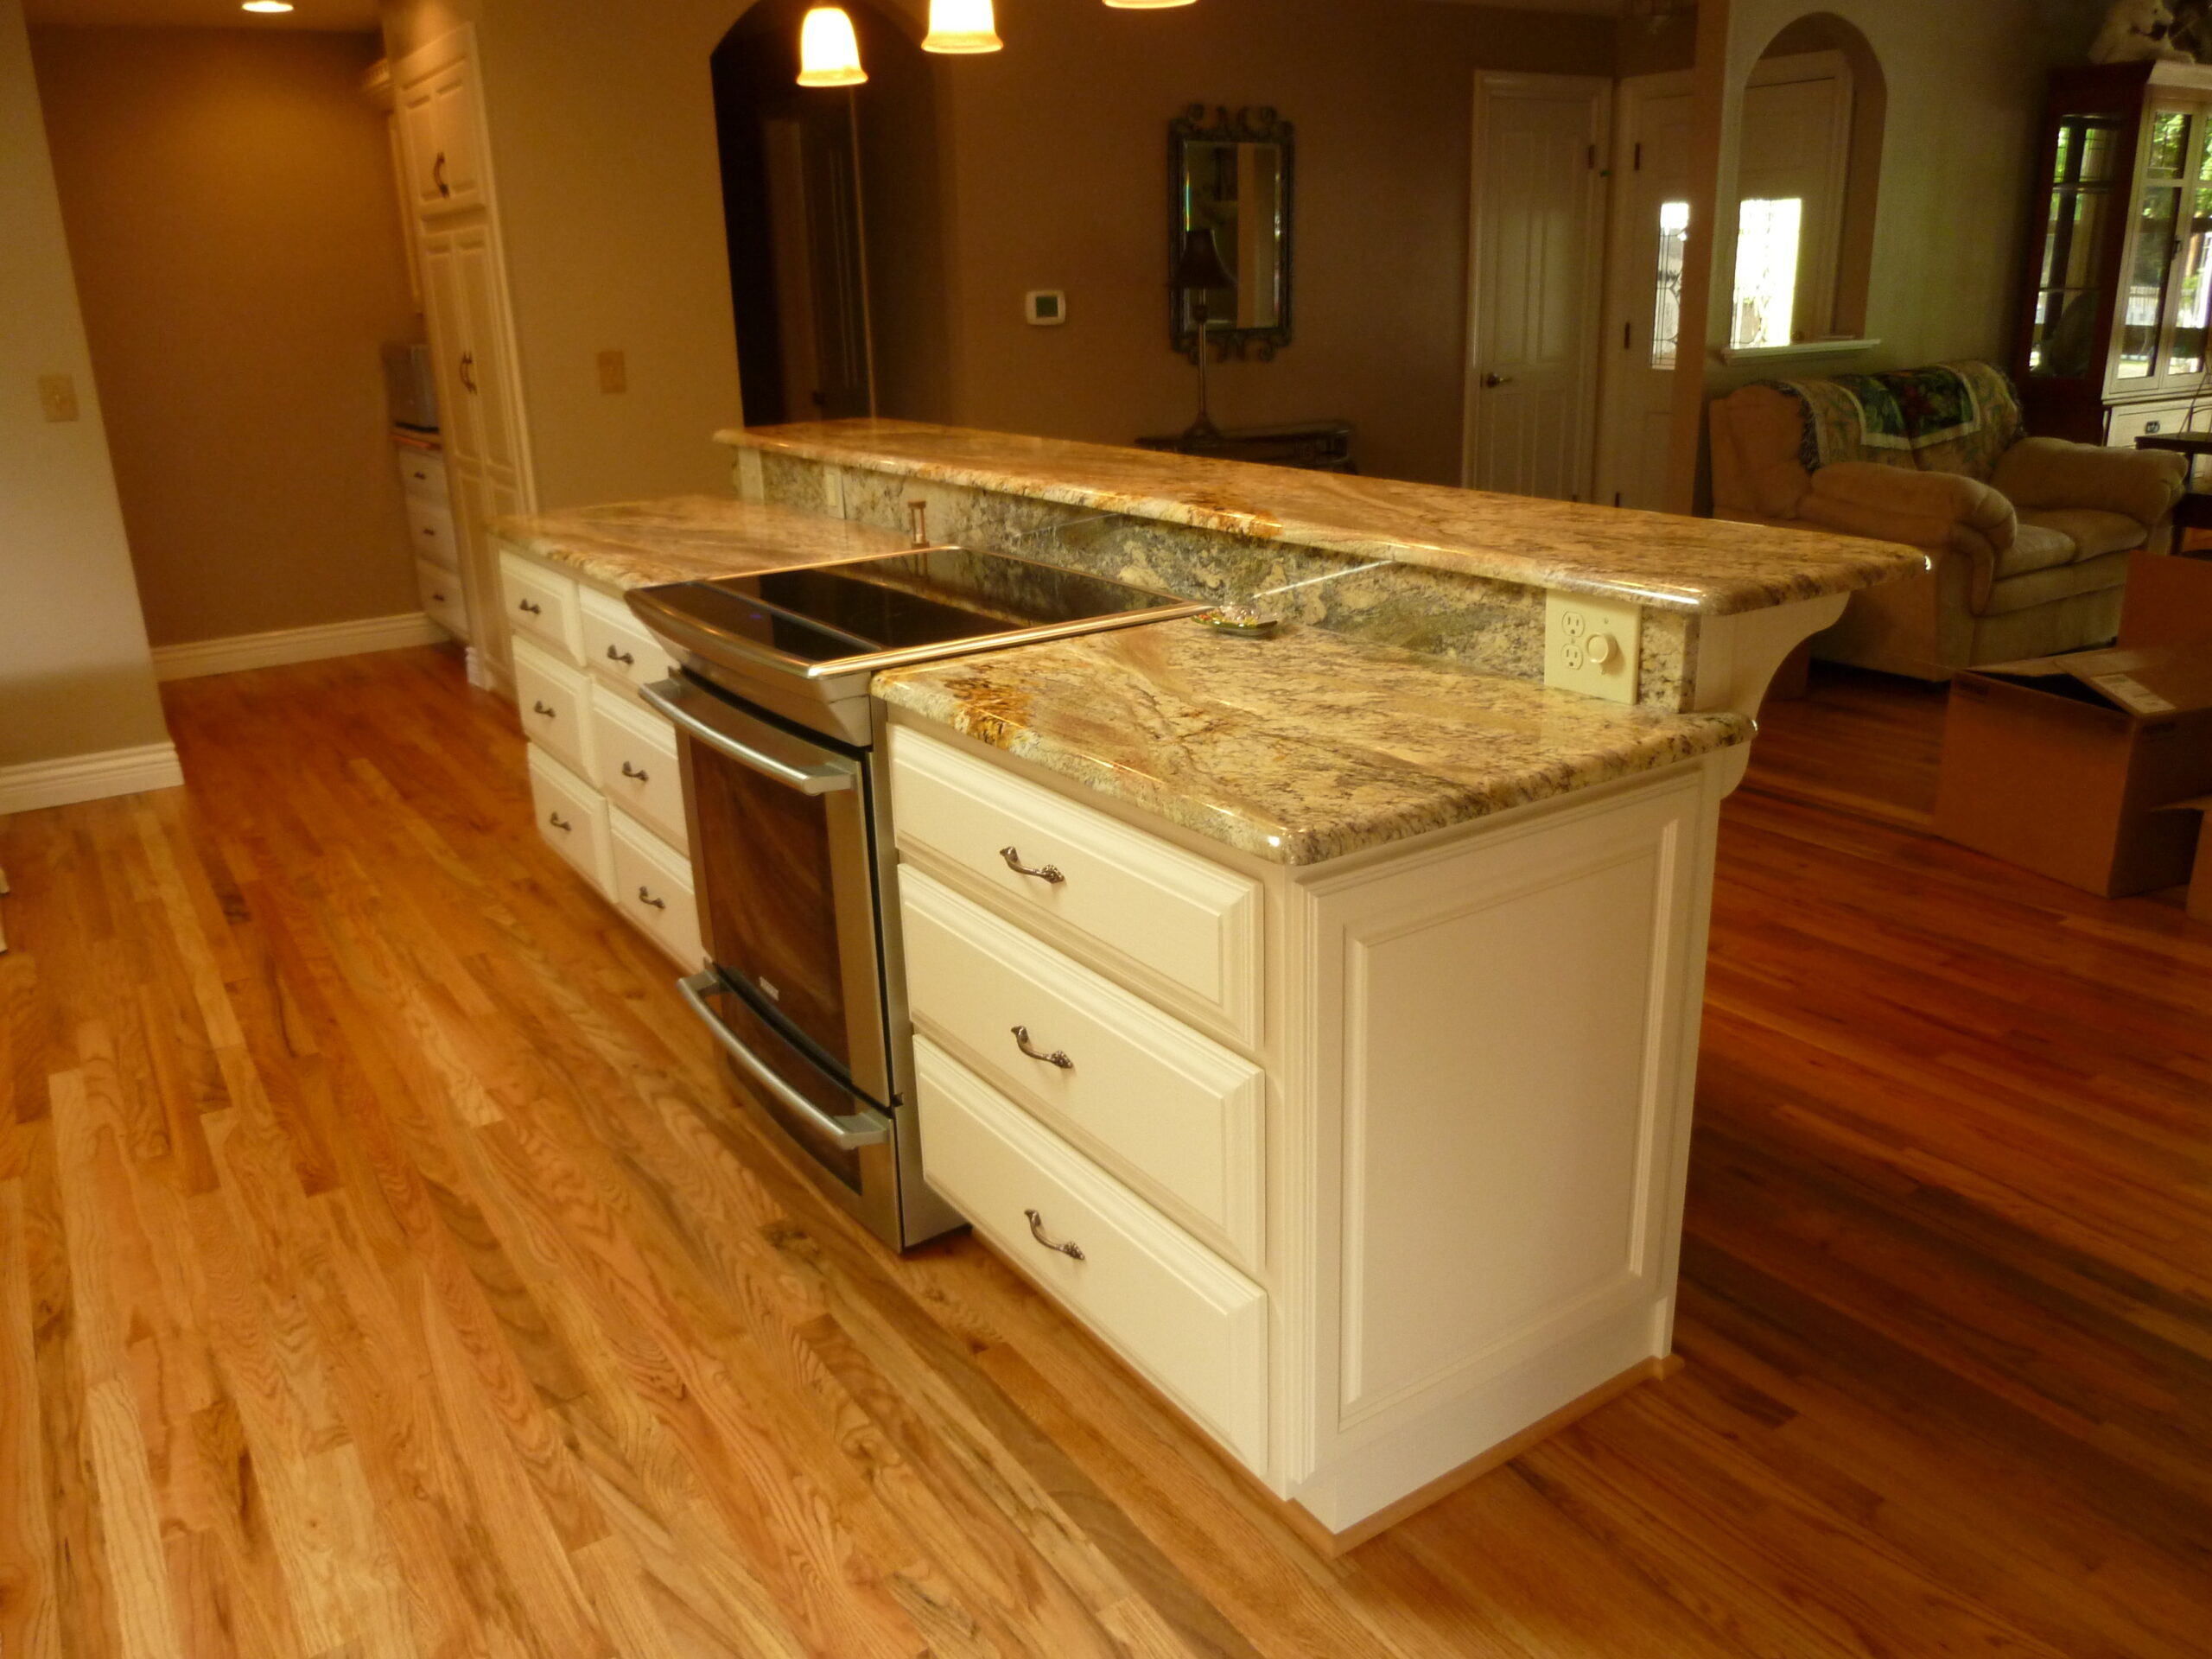 Kitchen island with stainless steel oven and electric stovetop